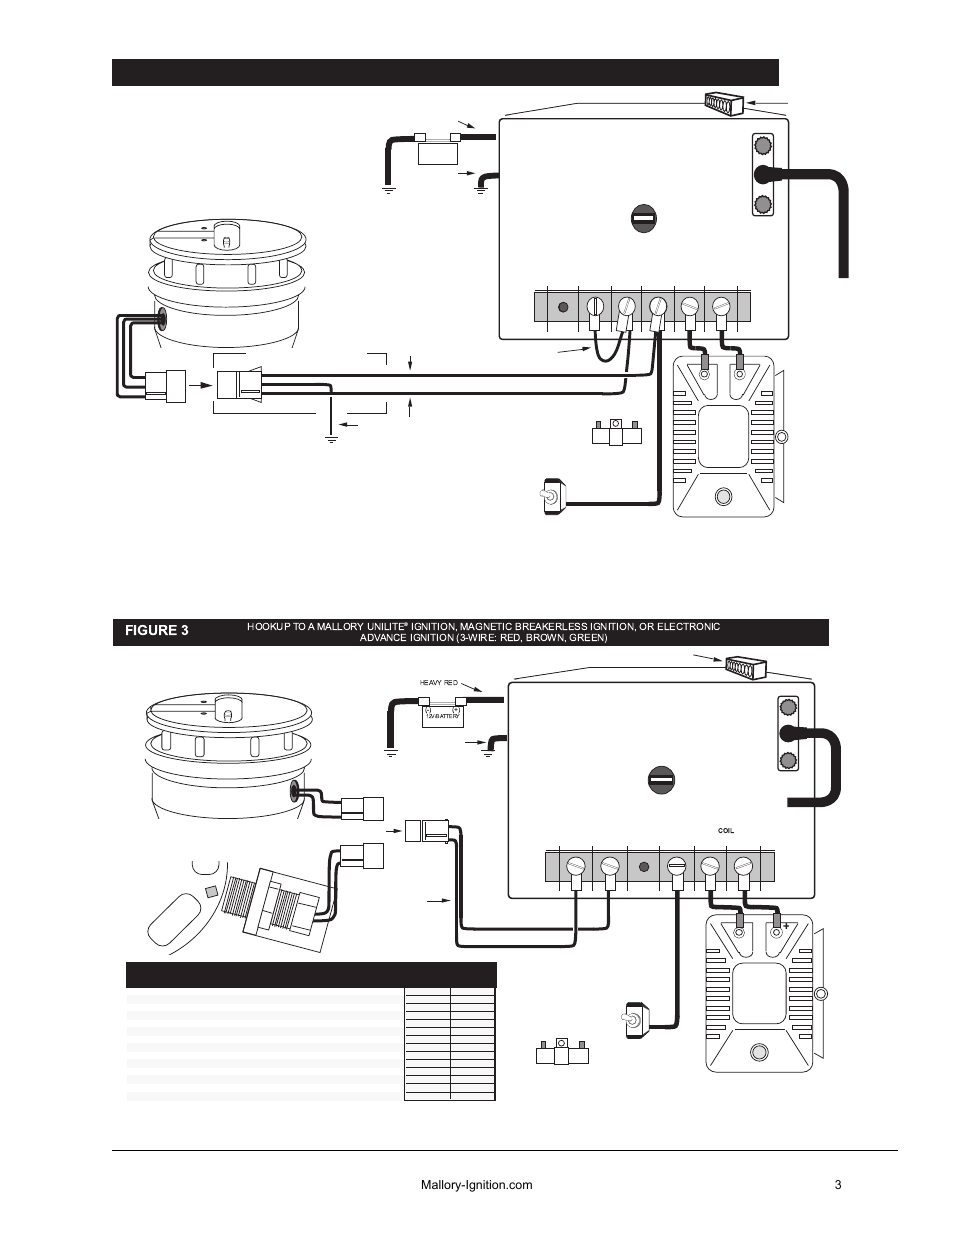 6401 Msd Ignition Wiring Diagram Ford Control 6tn Imca Repair Scheme